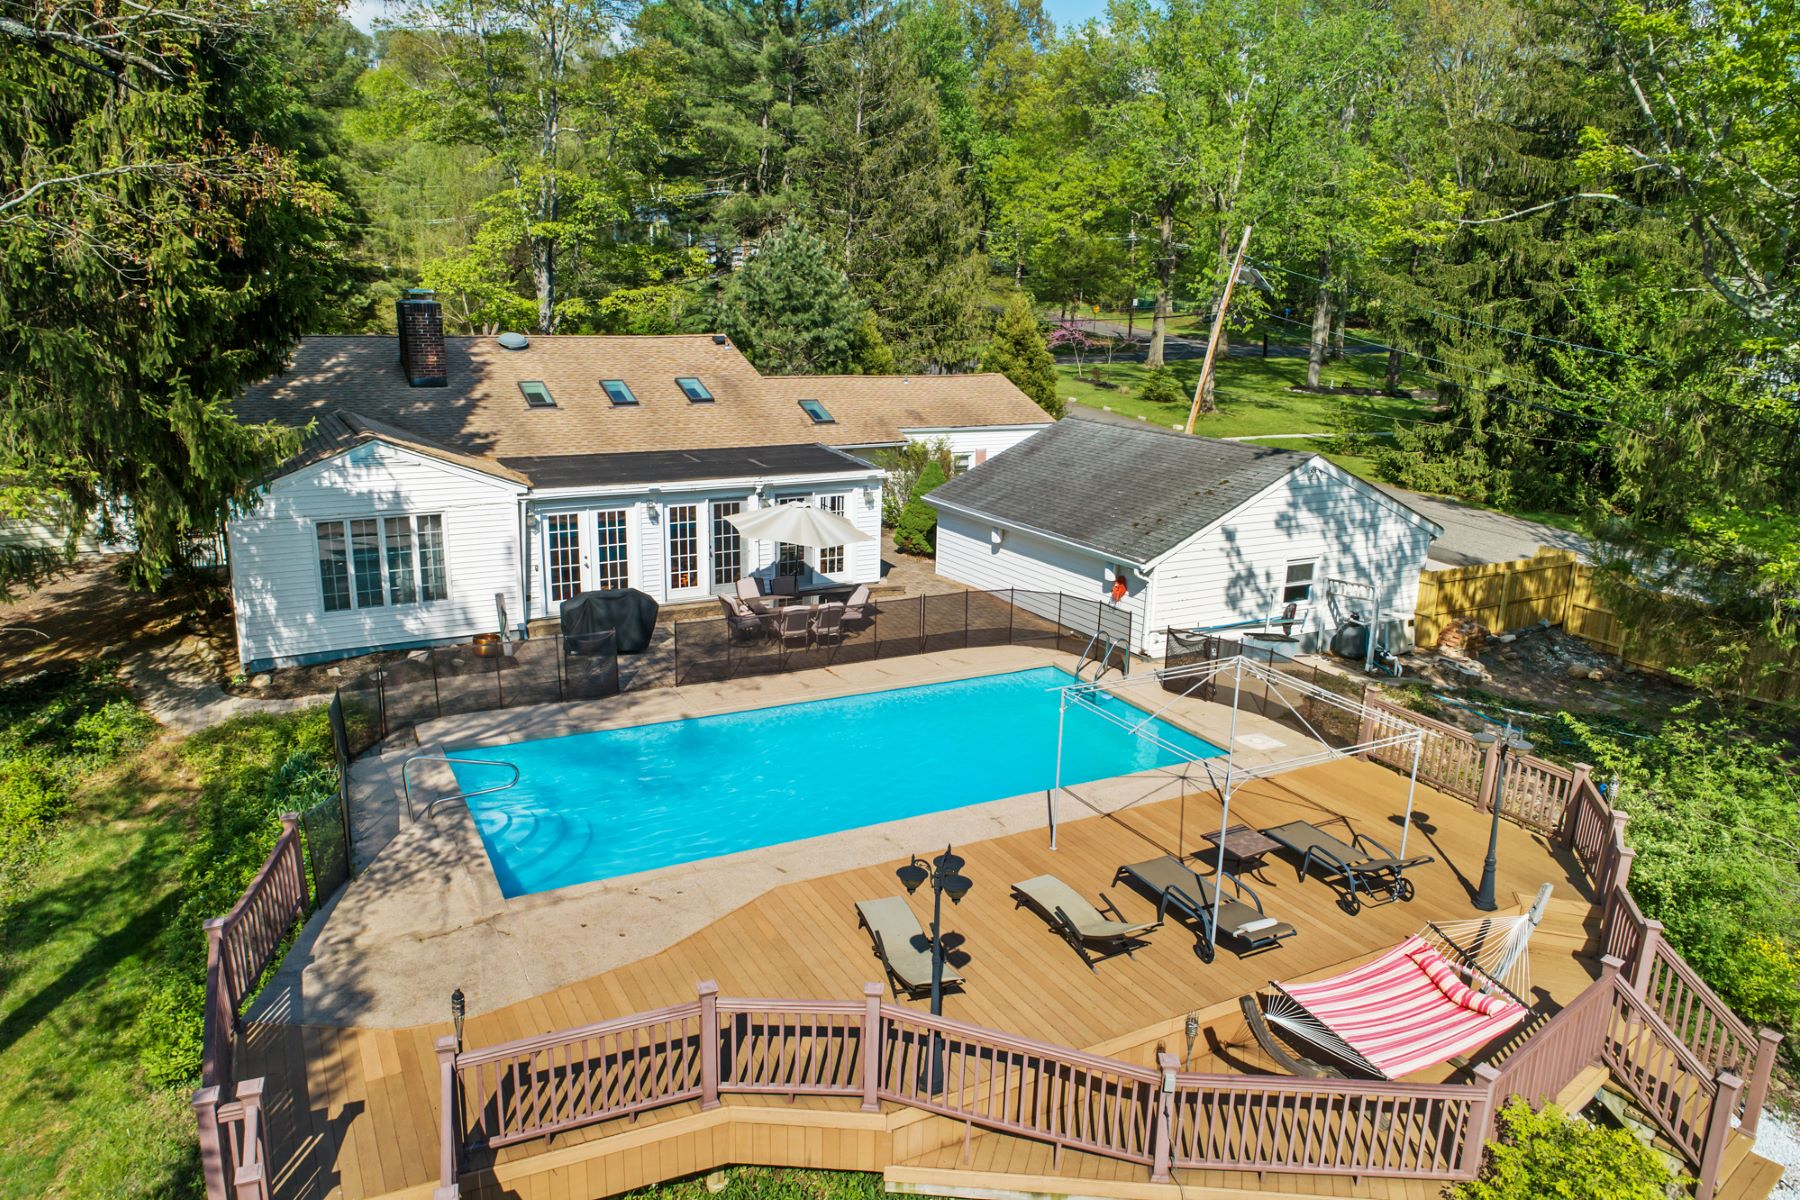 Single Family Homes for Sale at Modern Ranch Style Home 541 Foothill Road Bridgewater, New Jersey 08807 United States